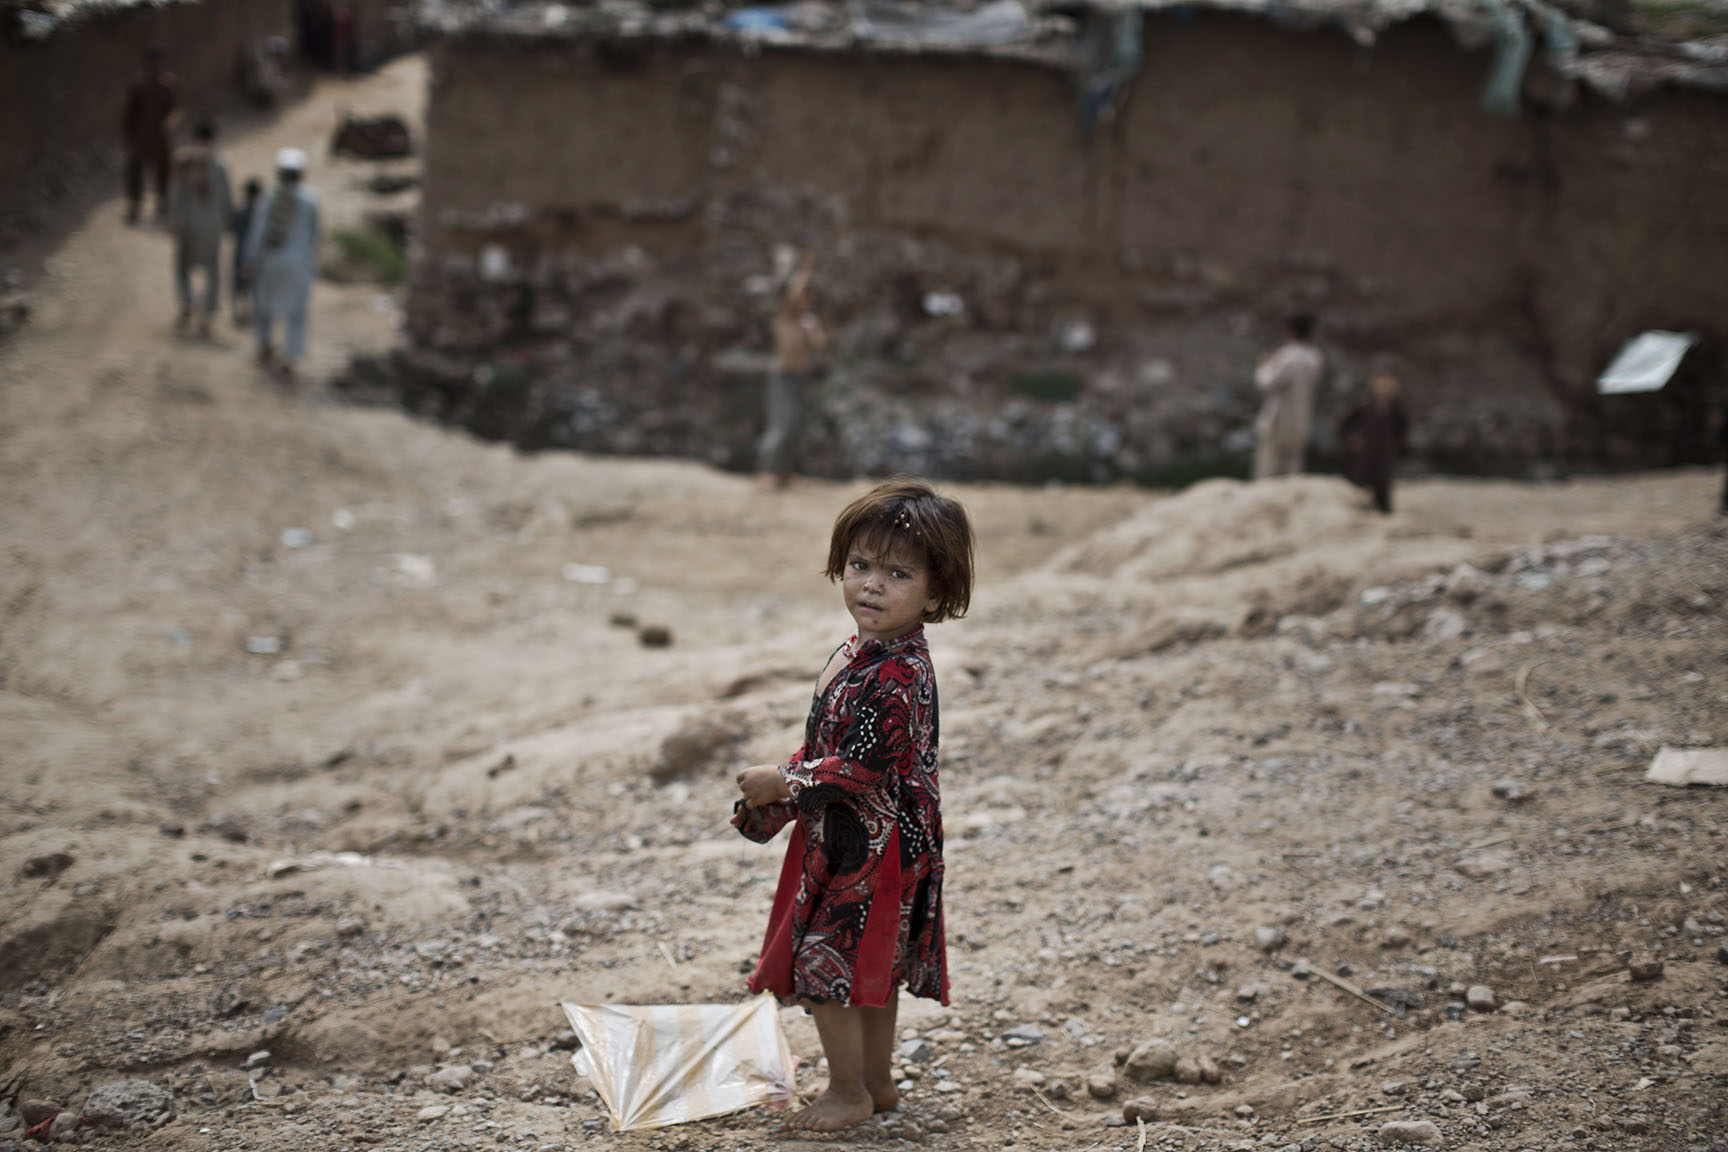 An Afghan refugee child, plays with a kite on the outskirts of Islamabad, Pakistan, Monday, Aug. 11, 2014. (AP Photo/Muhammed Muheisen)